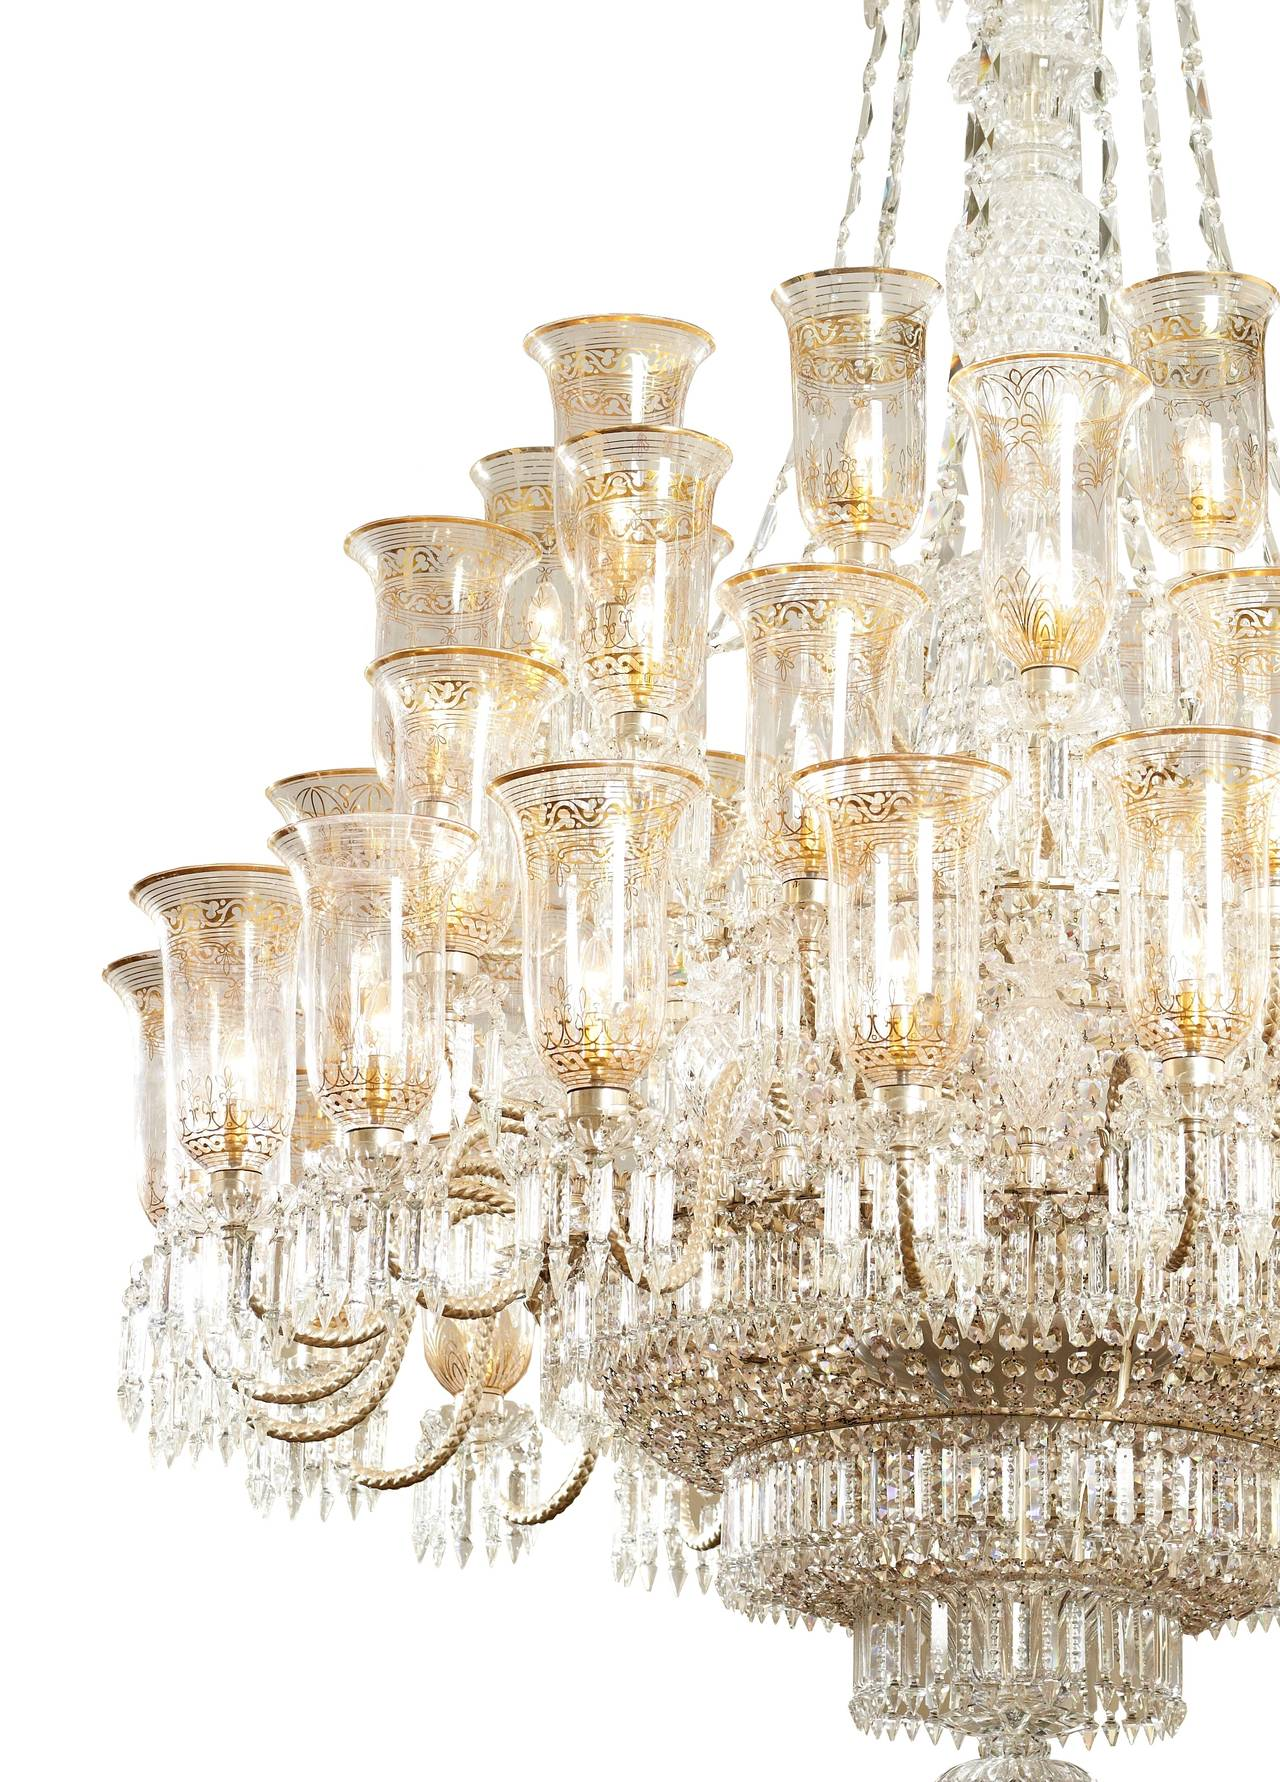 This exceptional, handcrafted antique chandelier is a truly magnificent  work of art. Unusual for - Very Large Cut-glass And Parcel-gilt Antique English Chandelier By F